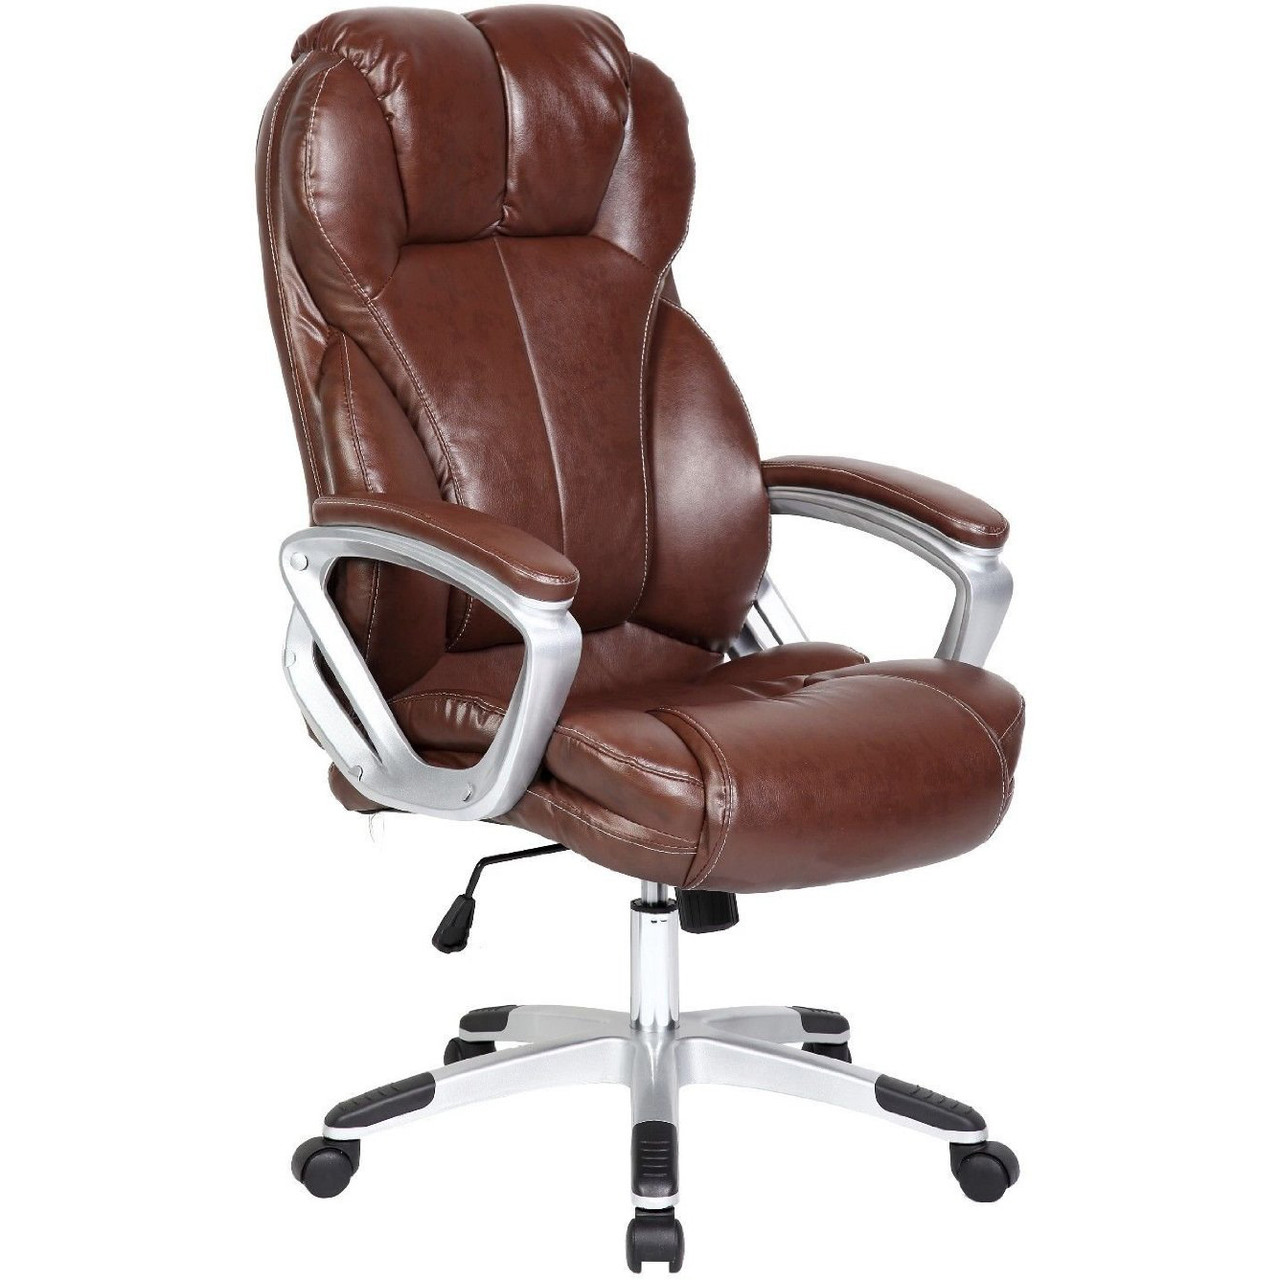 Executive Pu Leather Office Chair 2xhome Modern And Contemporary Furniture